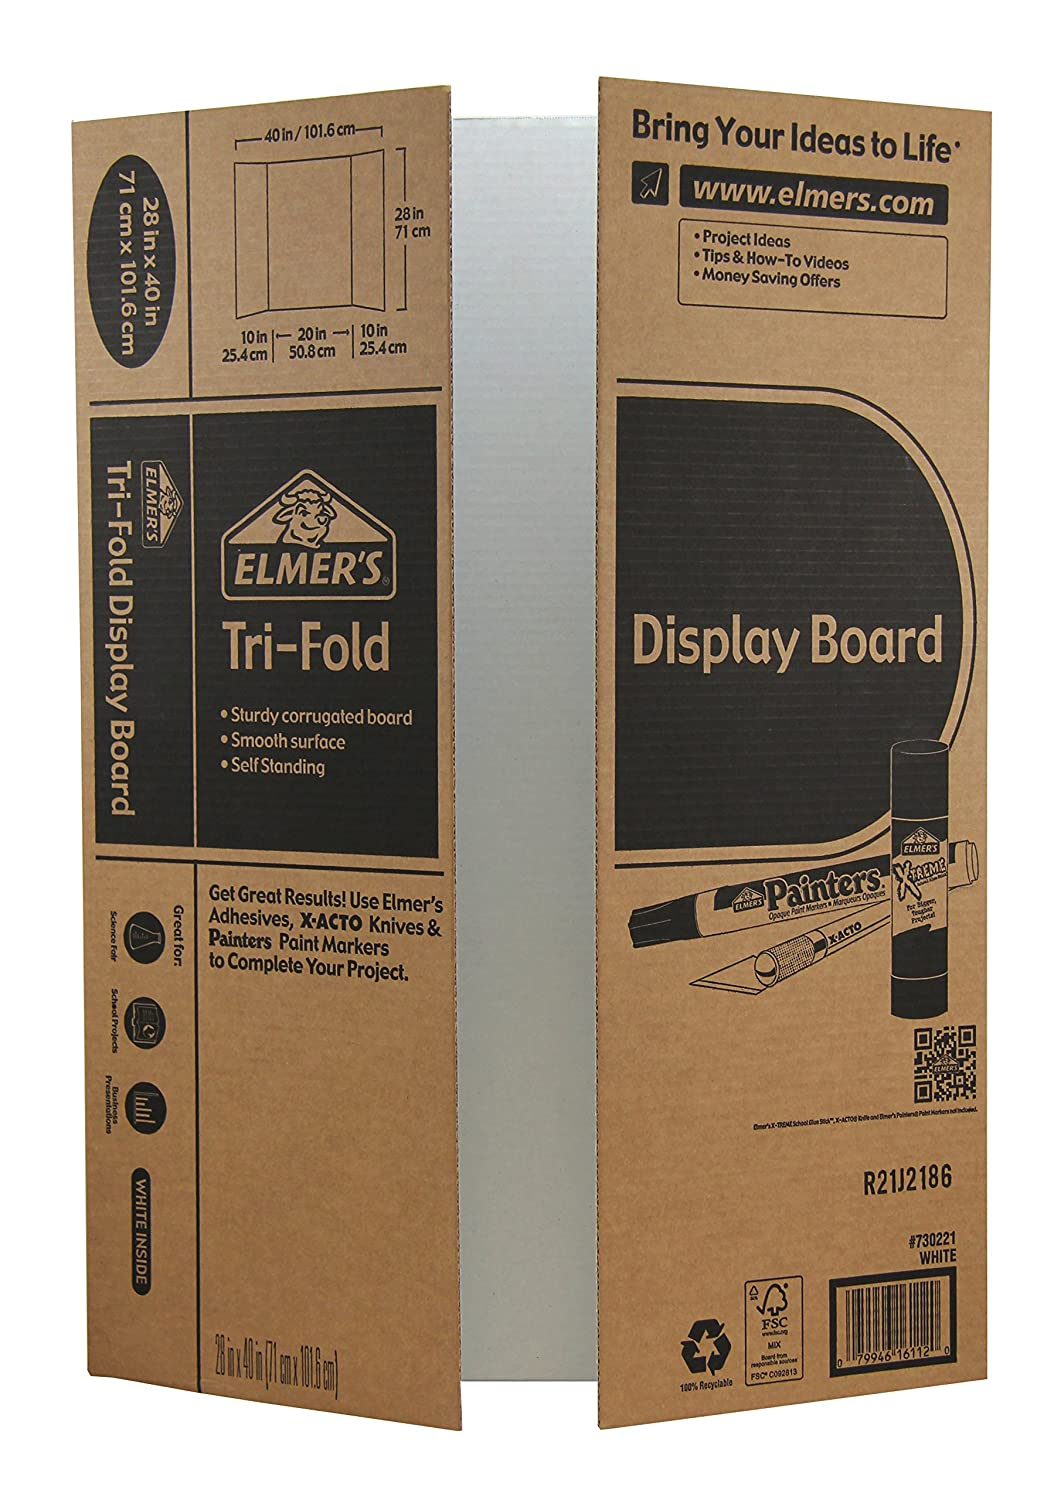 Elmer's Corrugated Tri-fold Display Board, 40 X 28 Inches, White Inside/Kraft Outside, 12-Pack (730221) White/Kraft Elmer Products